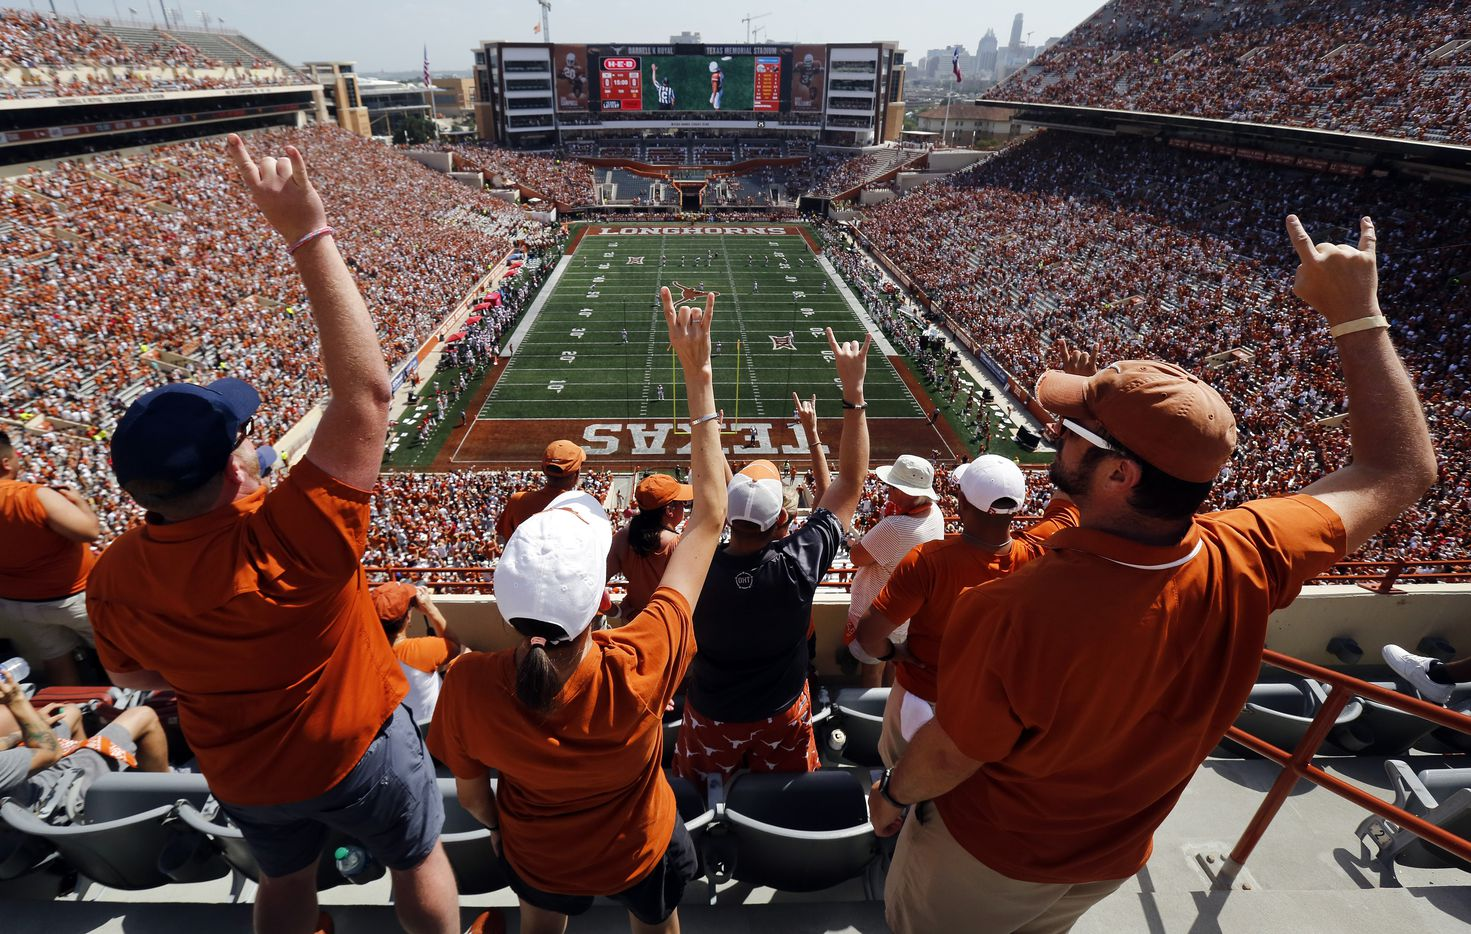 Texas Longhorns fans raise their Hook'em Horns hands as they prepare to kickoff the season against the Louisiana-Lafayette Ragin Cajuns at DKR-Texas Memorial Stadium in Austin, Saturday, September 4, 2021. (Tom Fox/The Dallas Morning News)